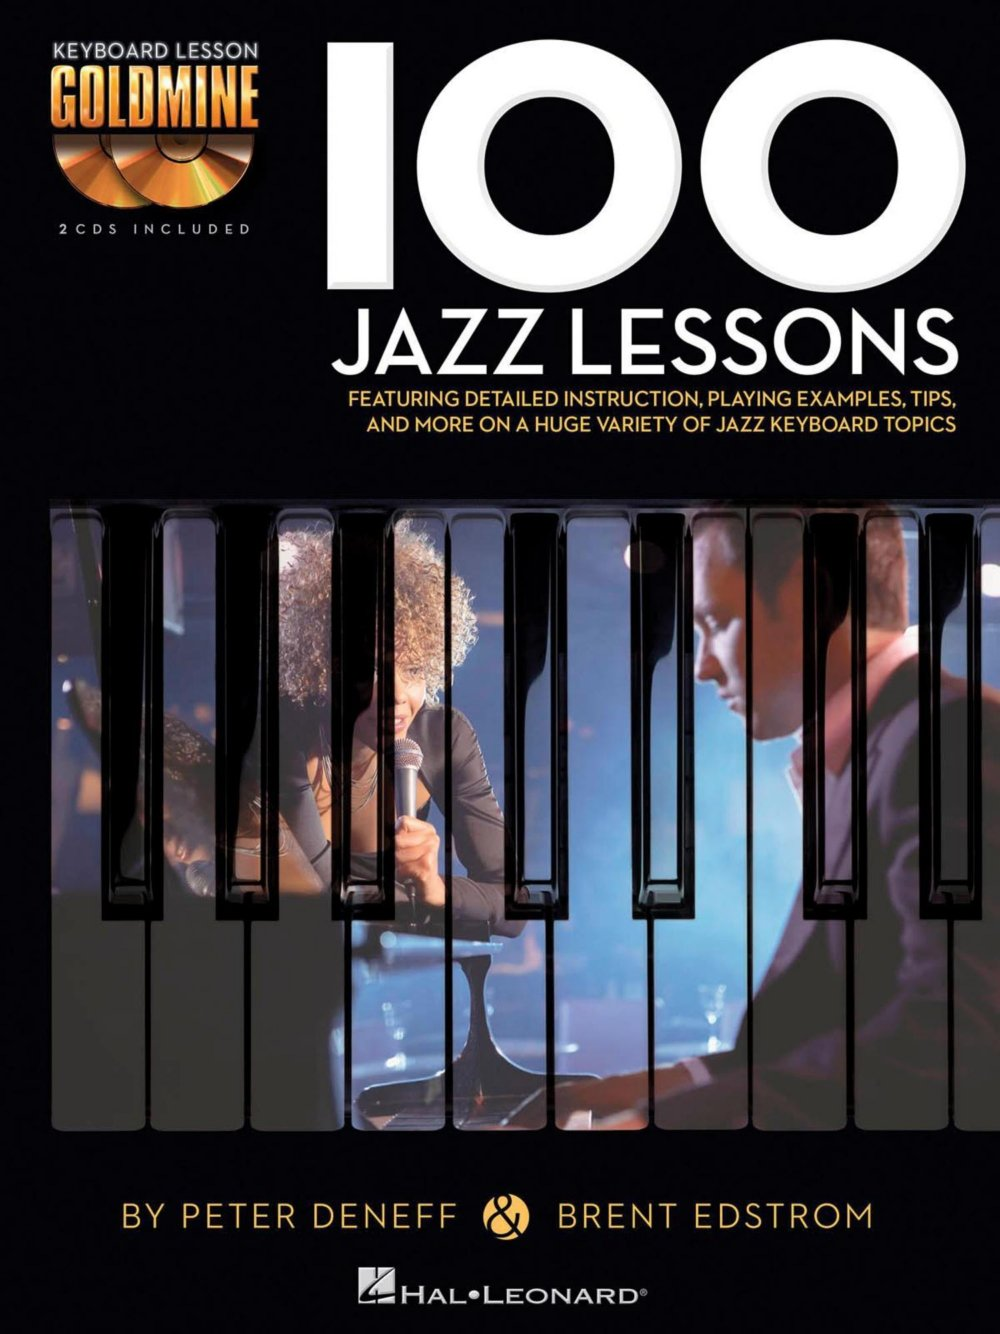 Hal Leonard 100 Jazz Lessons - Keyboard Lesson Goldmine Series Book/2-CD  Pack: Hal Leonard: 0884088949341: Amazon.com: Books